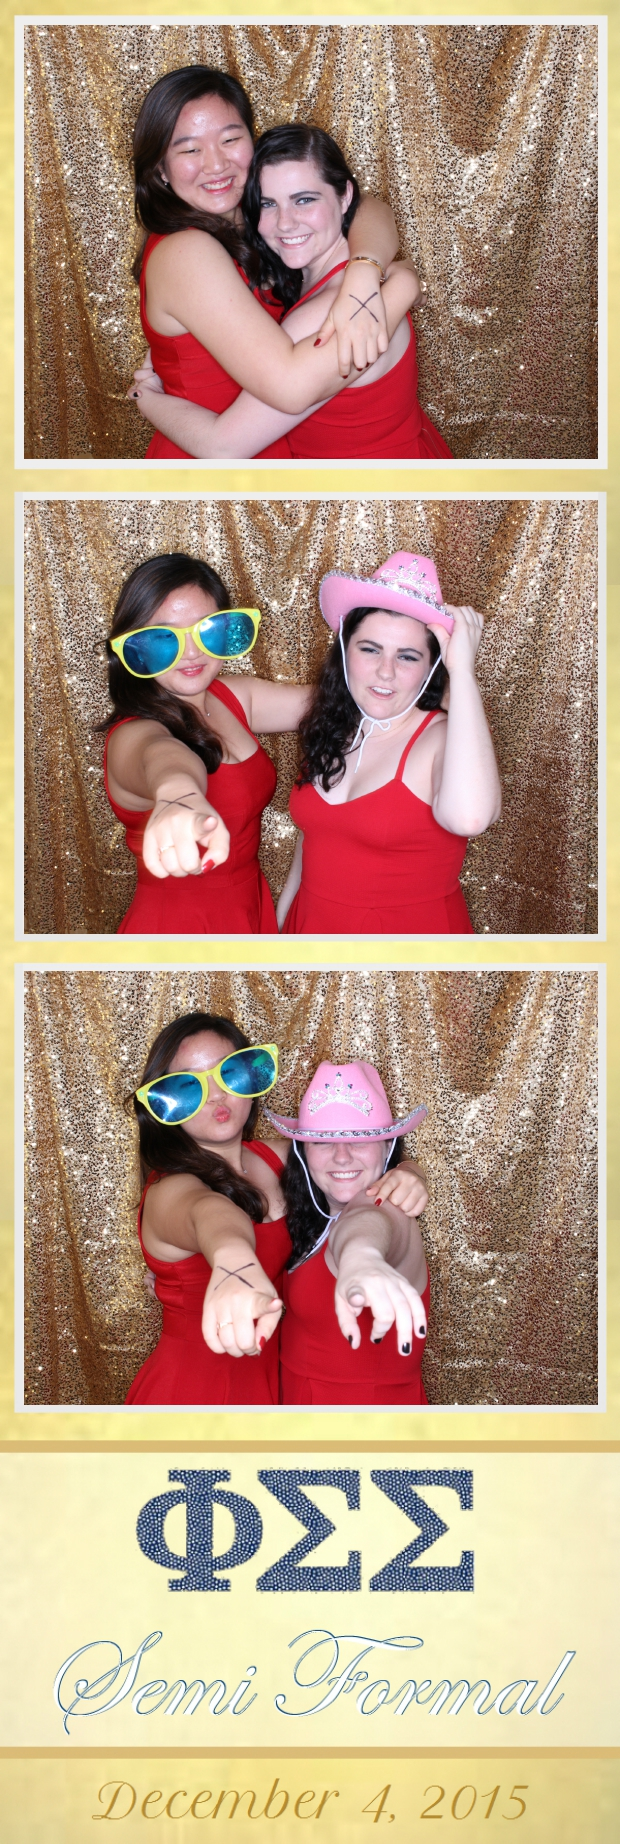 Guest House Events Photo Booth Phi Sigma Sigma Semi Formal (70).jpg